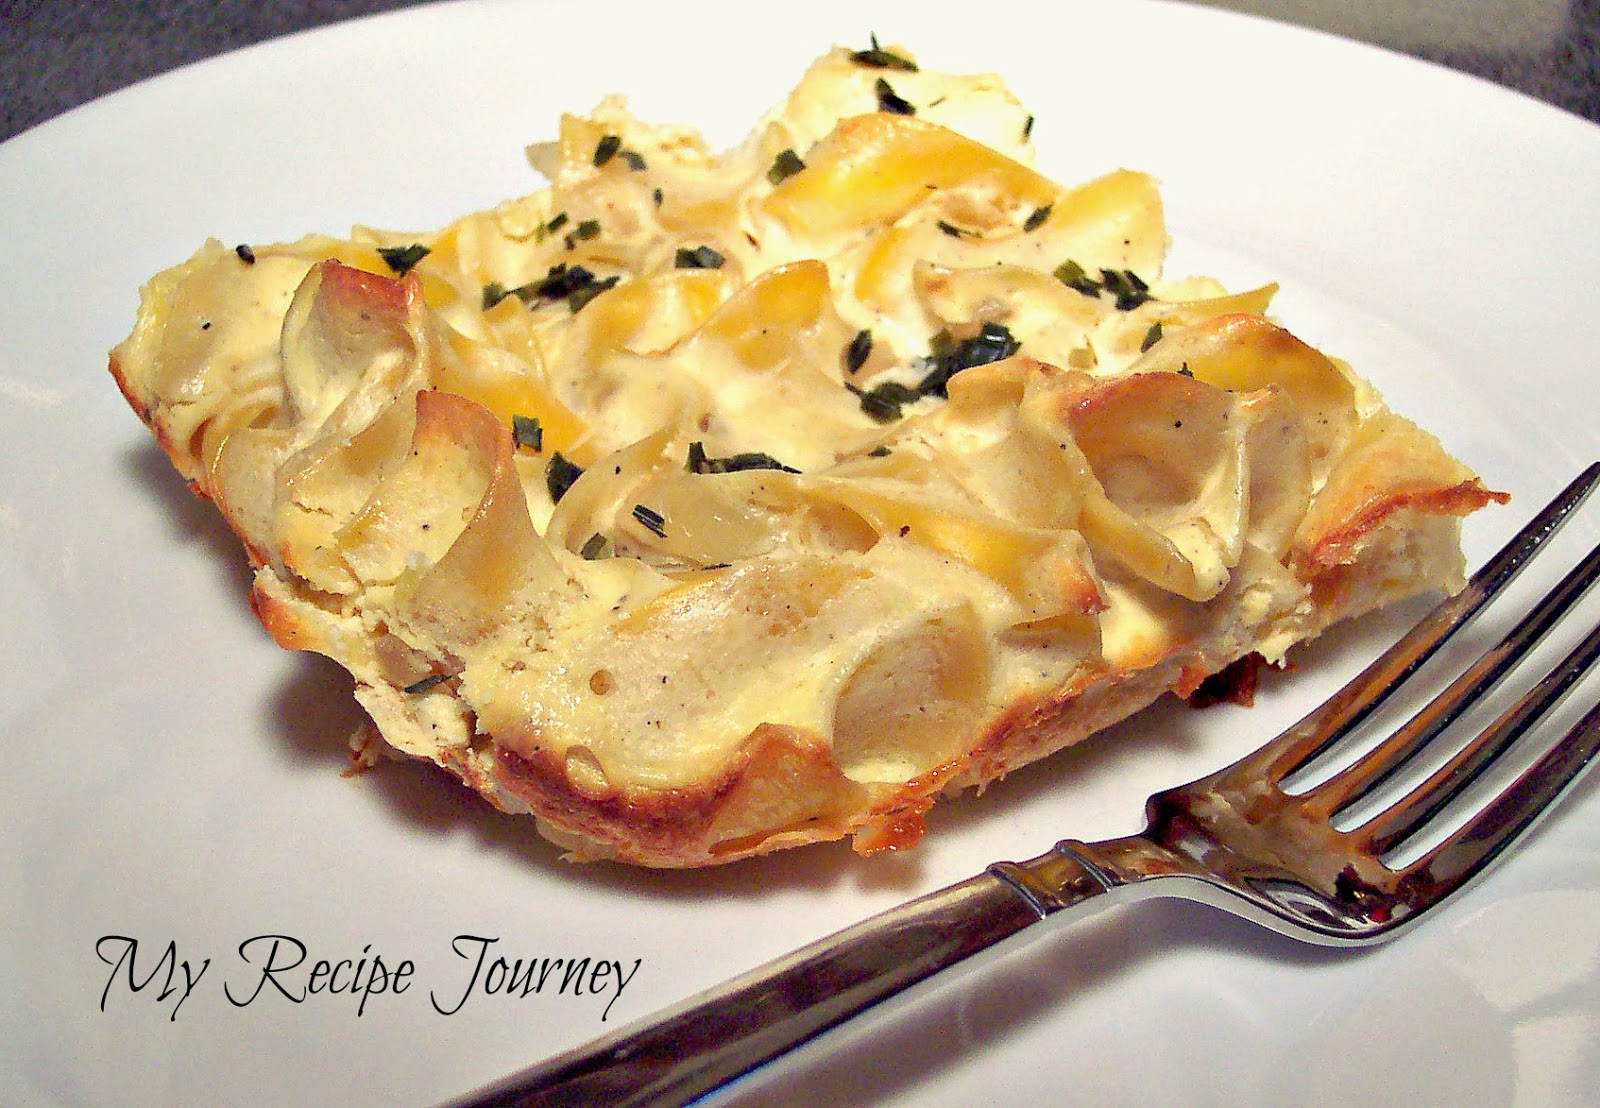 My Recipe Journey: 3 Cheese Noodle Pudding